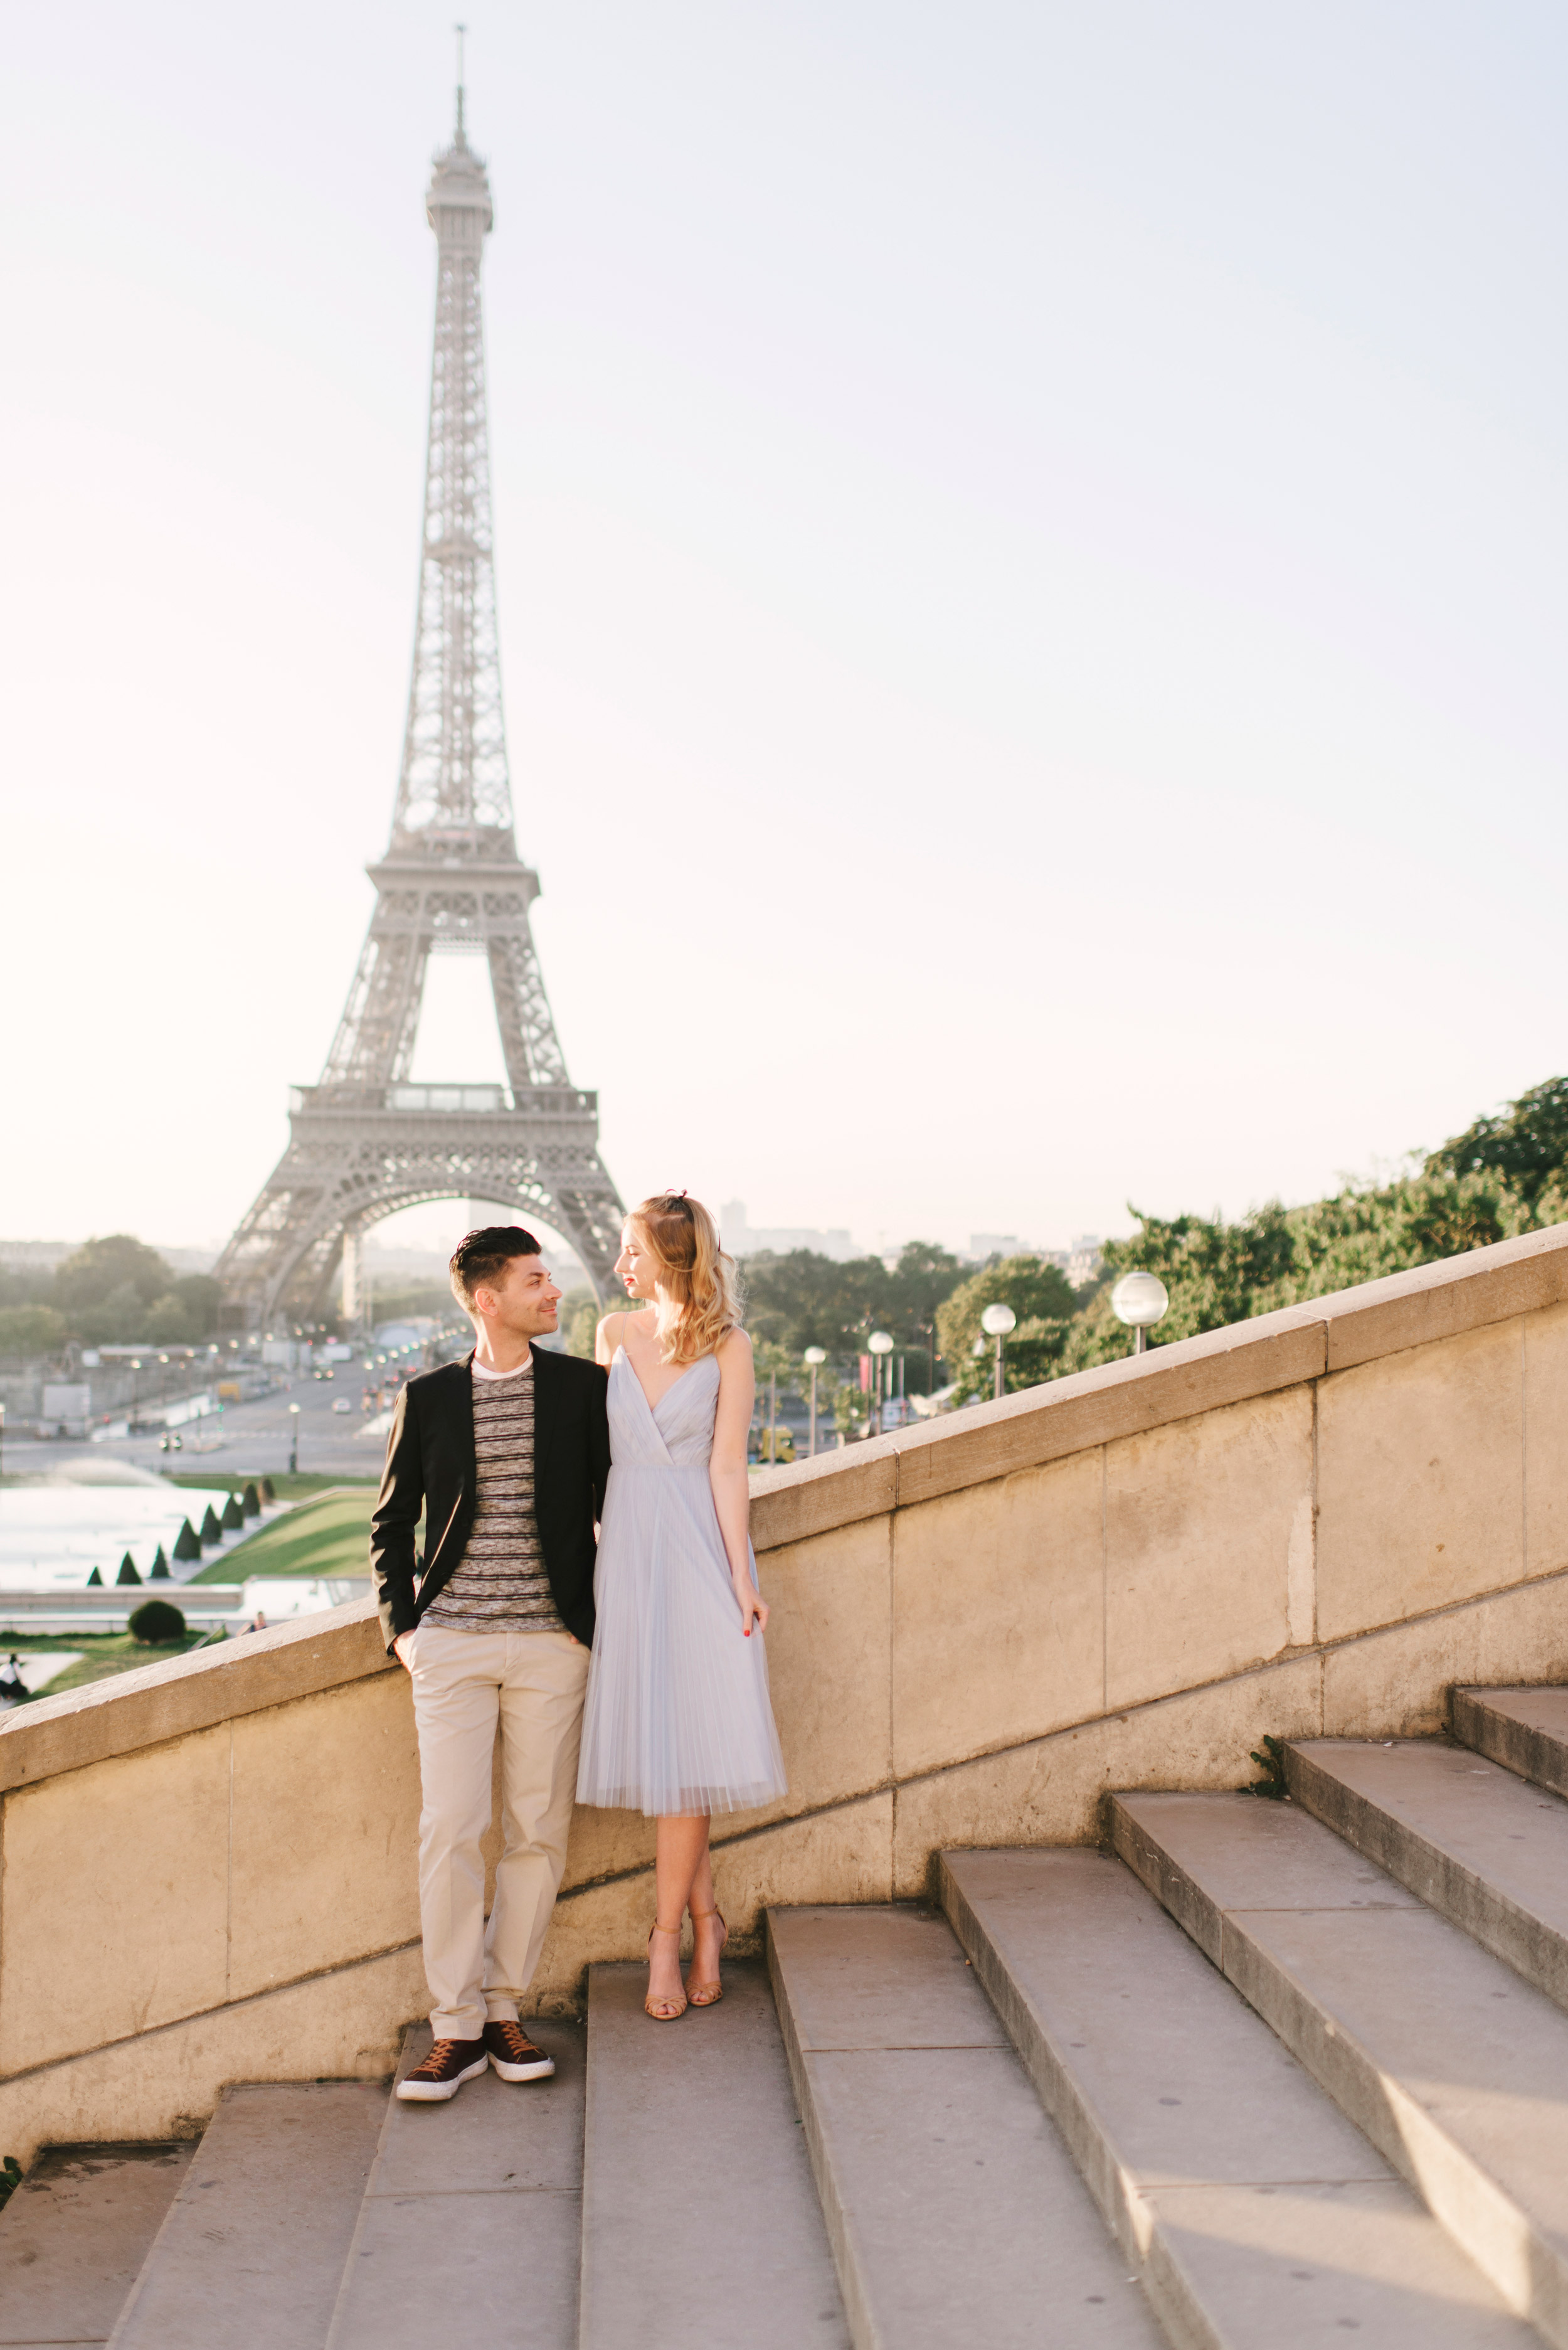 COUPLES - Anniversary, Honeymoon and Engagment Sessions